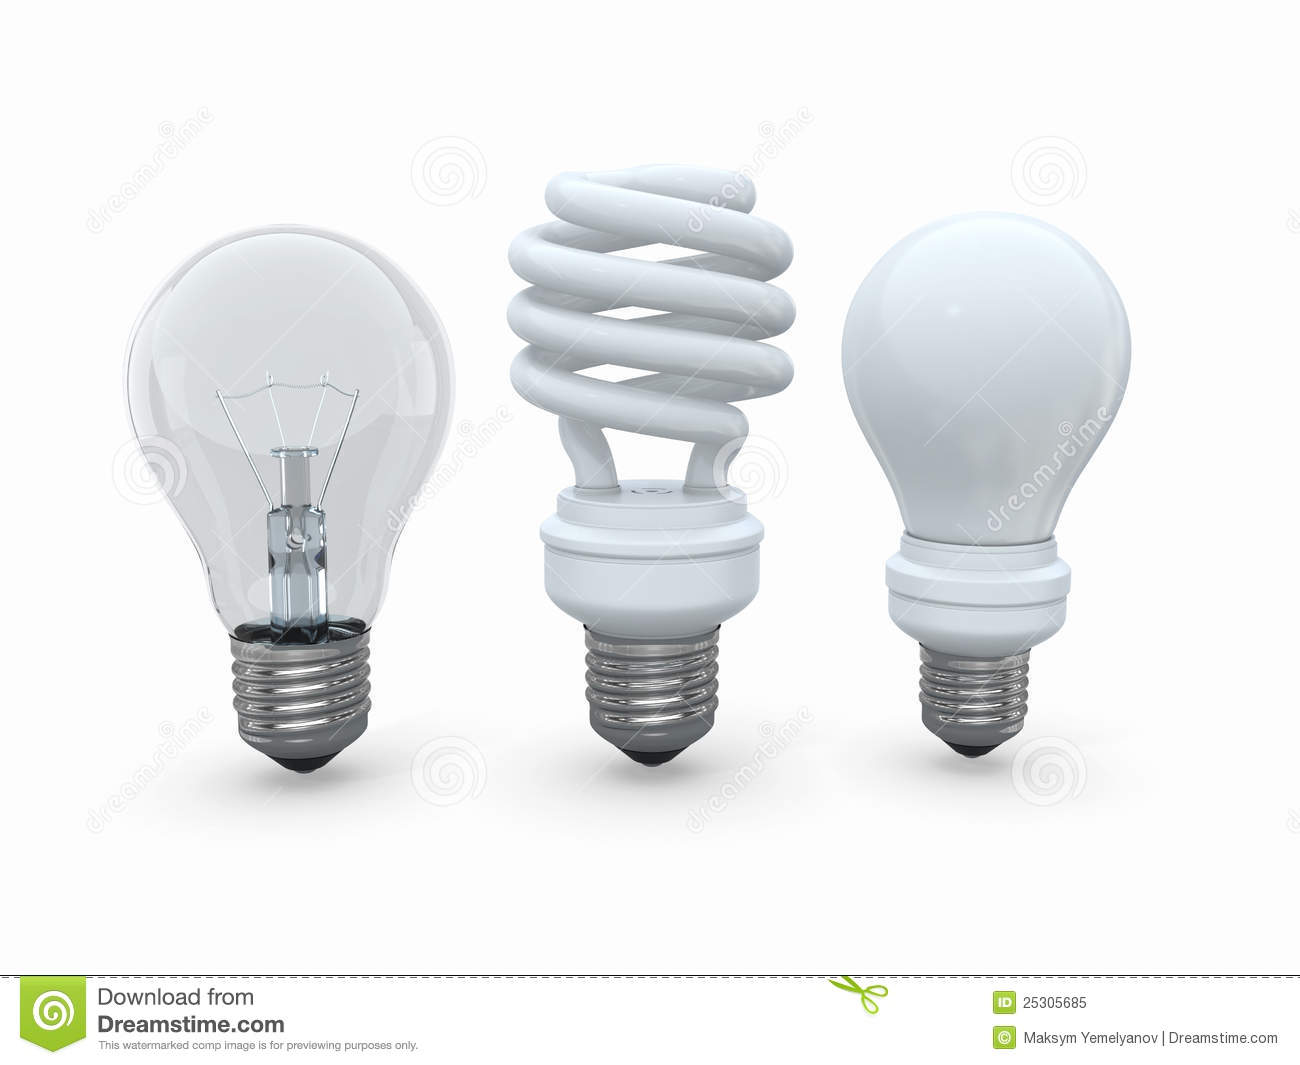 Three Types Of Lamp Bulbs On White Background Royalty Free Stock Photo Image 25305685